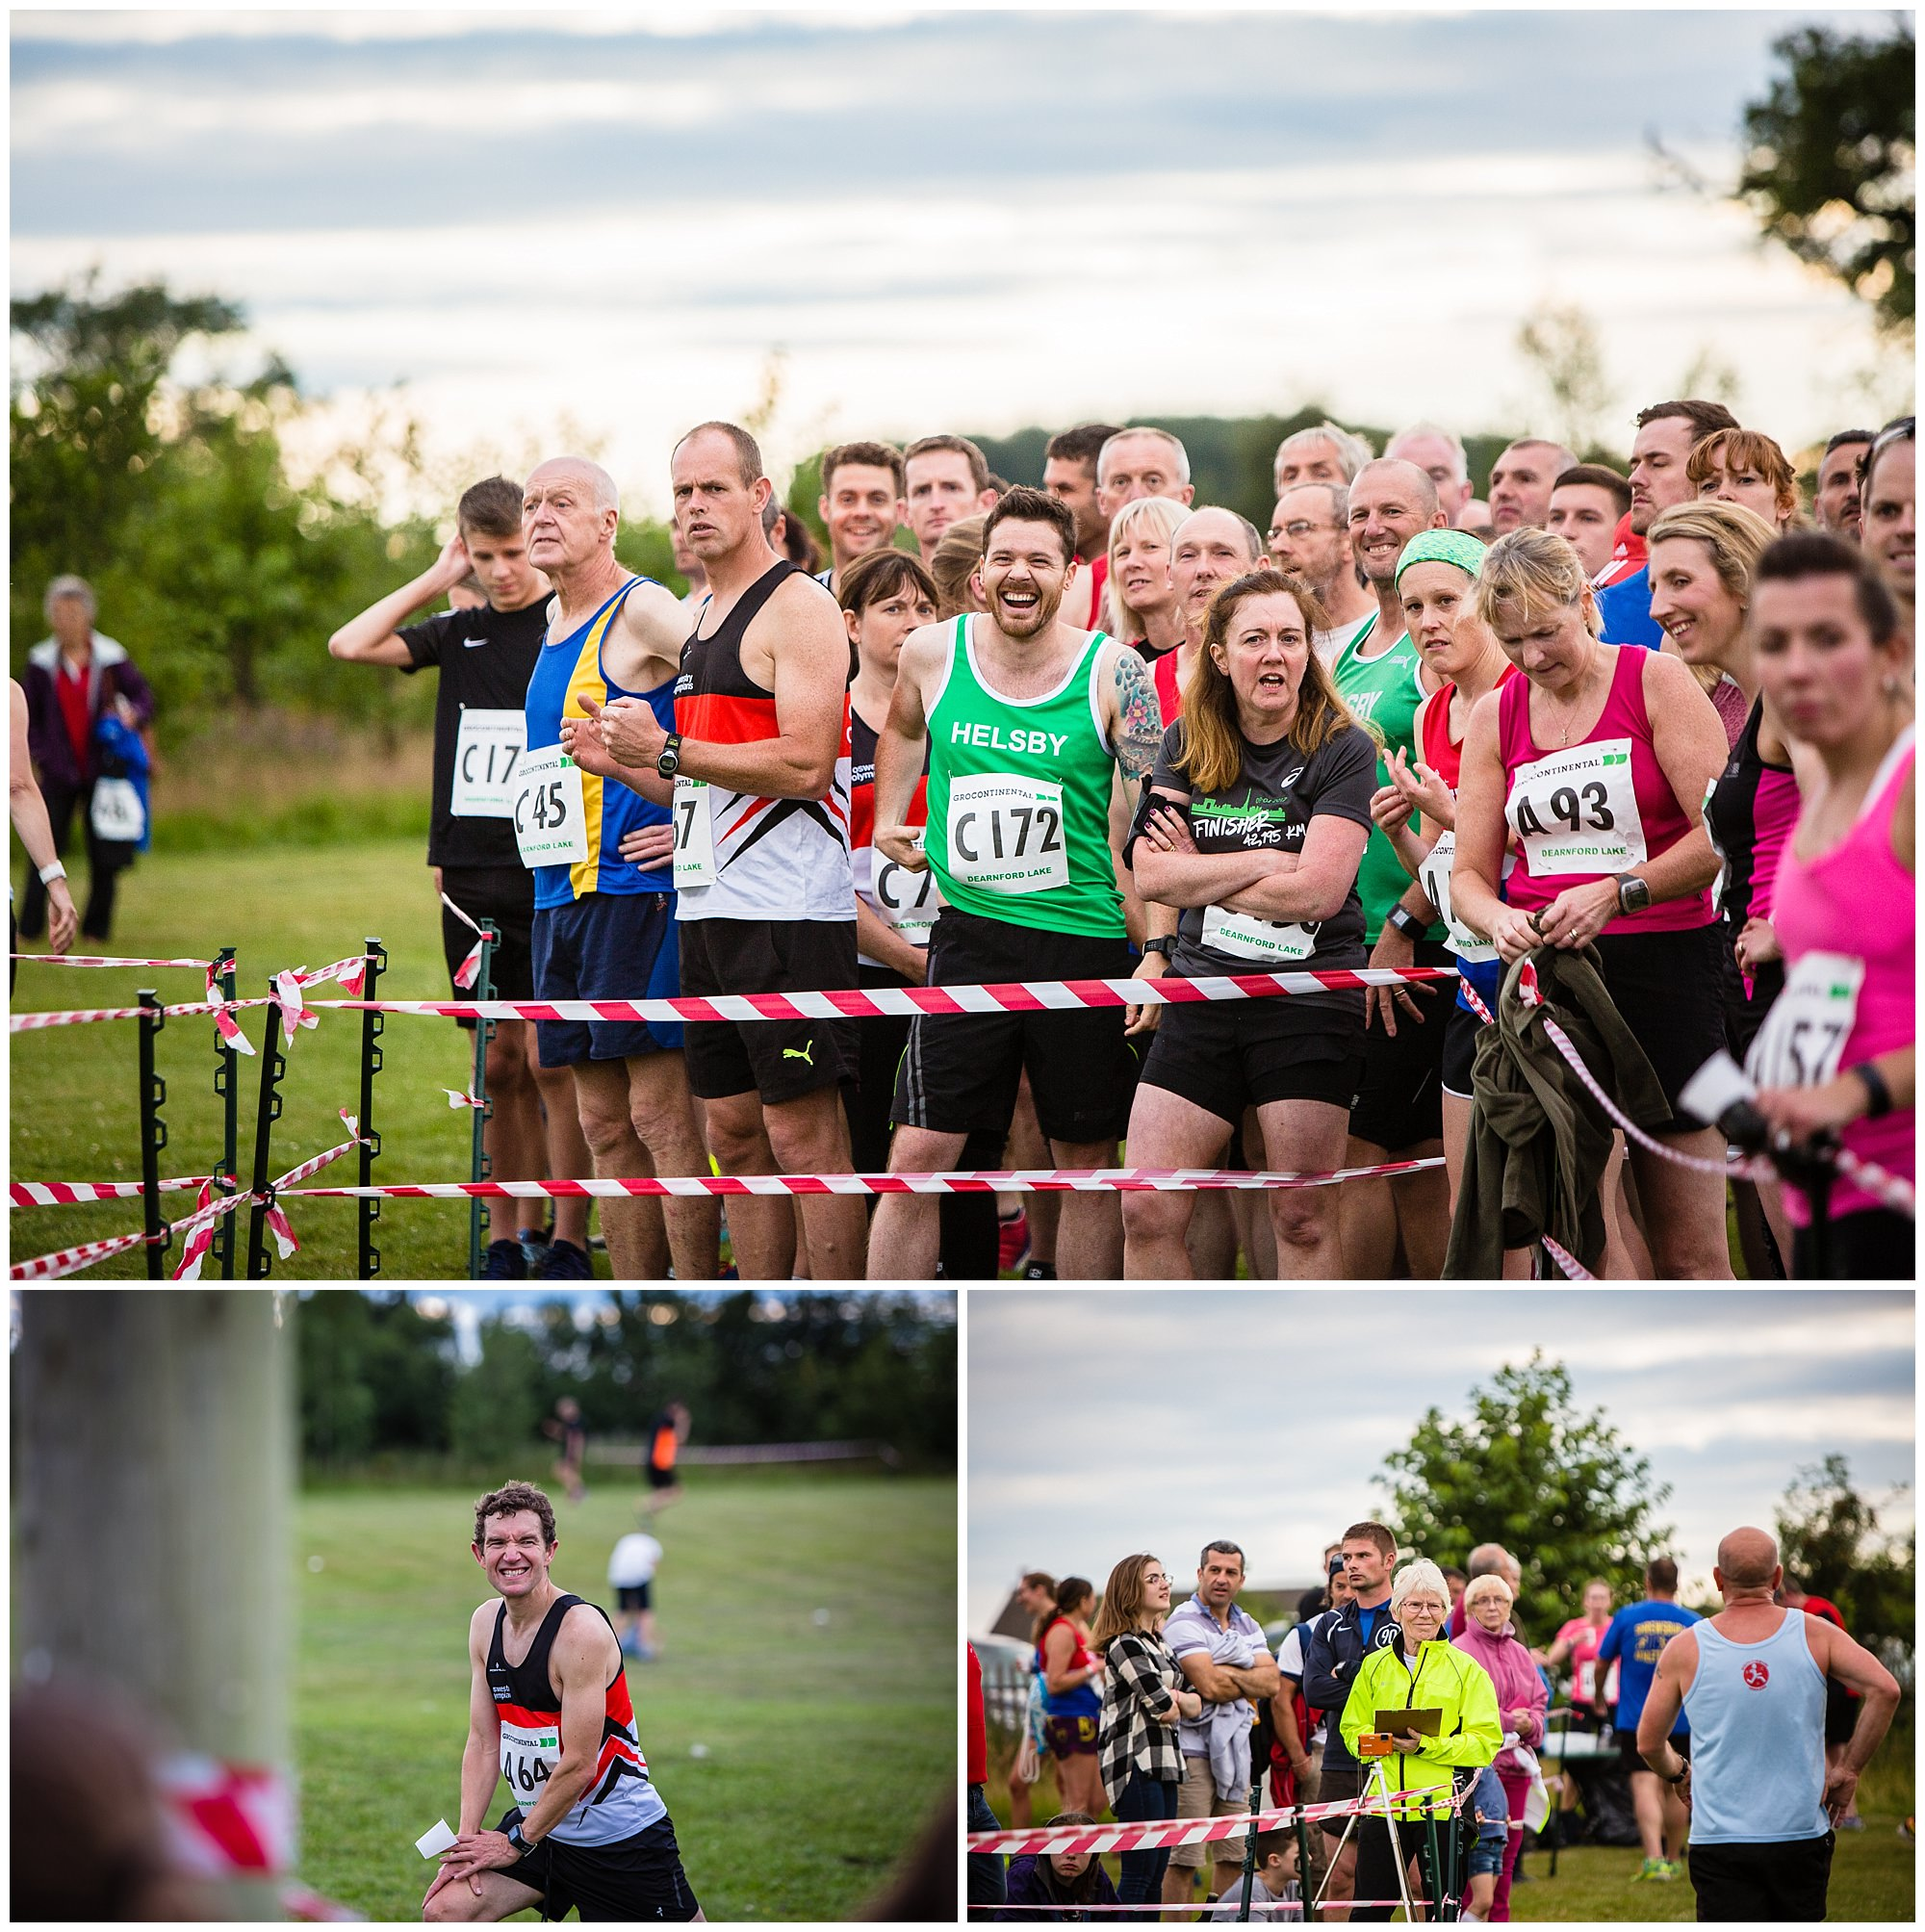 lots of supports at aldeford lake relay - shropshire event photographer